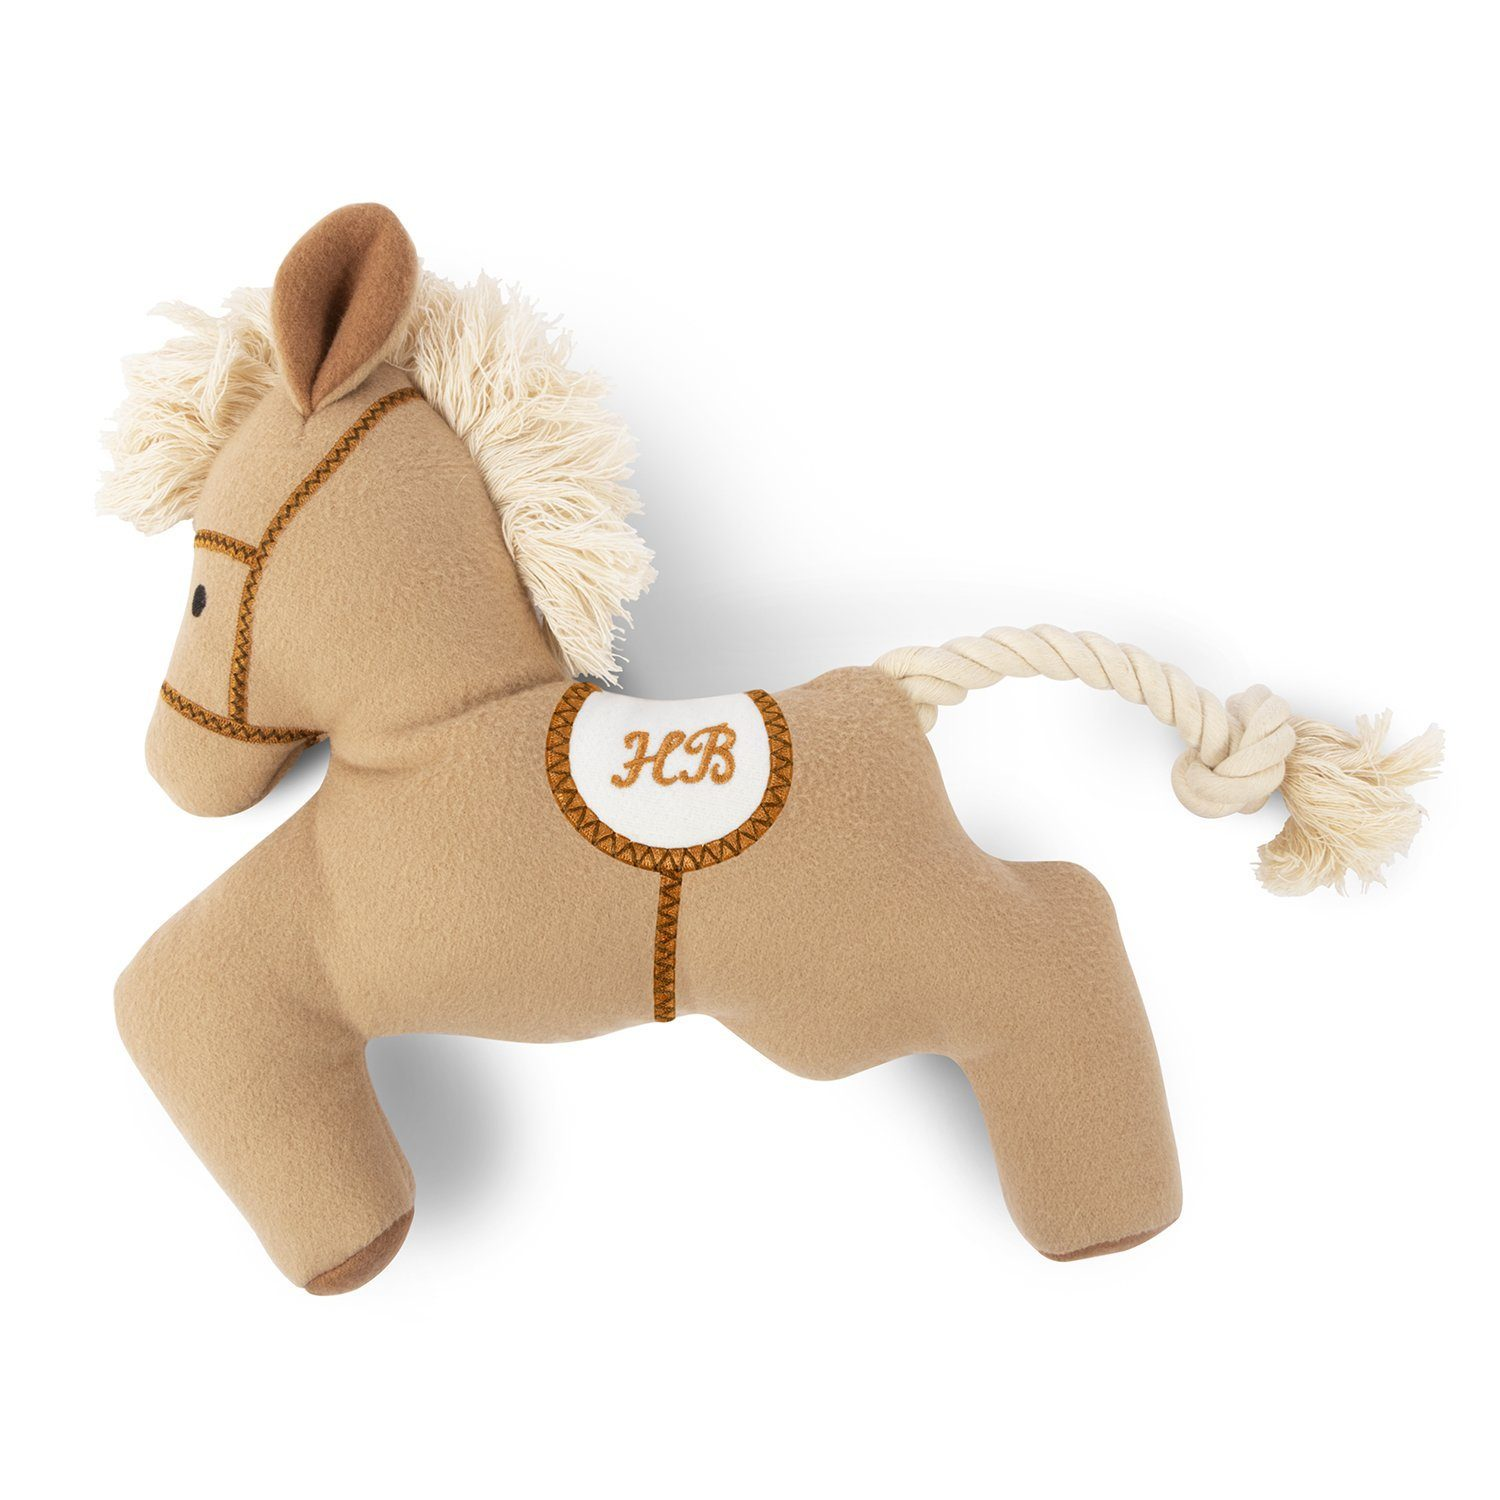 Plush Toy - Racing Horse Dog Toy